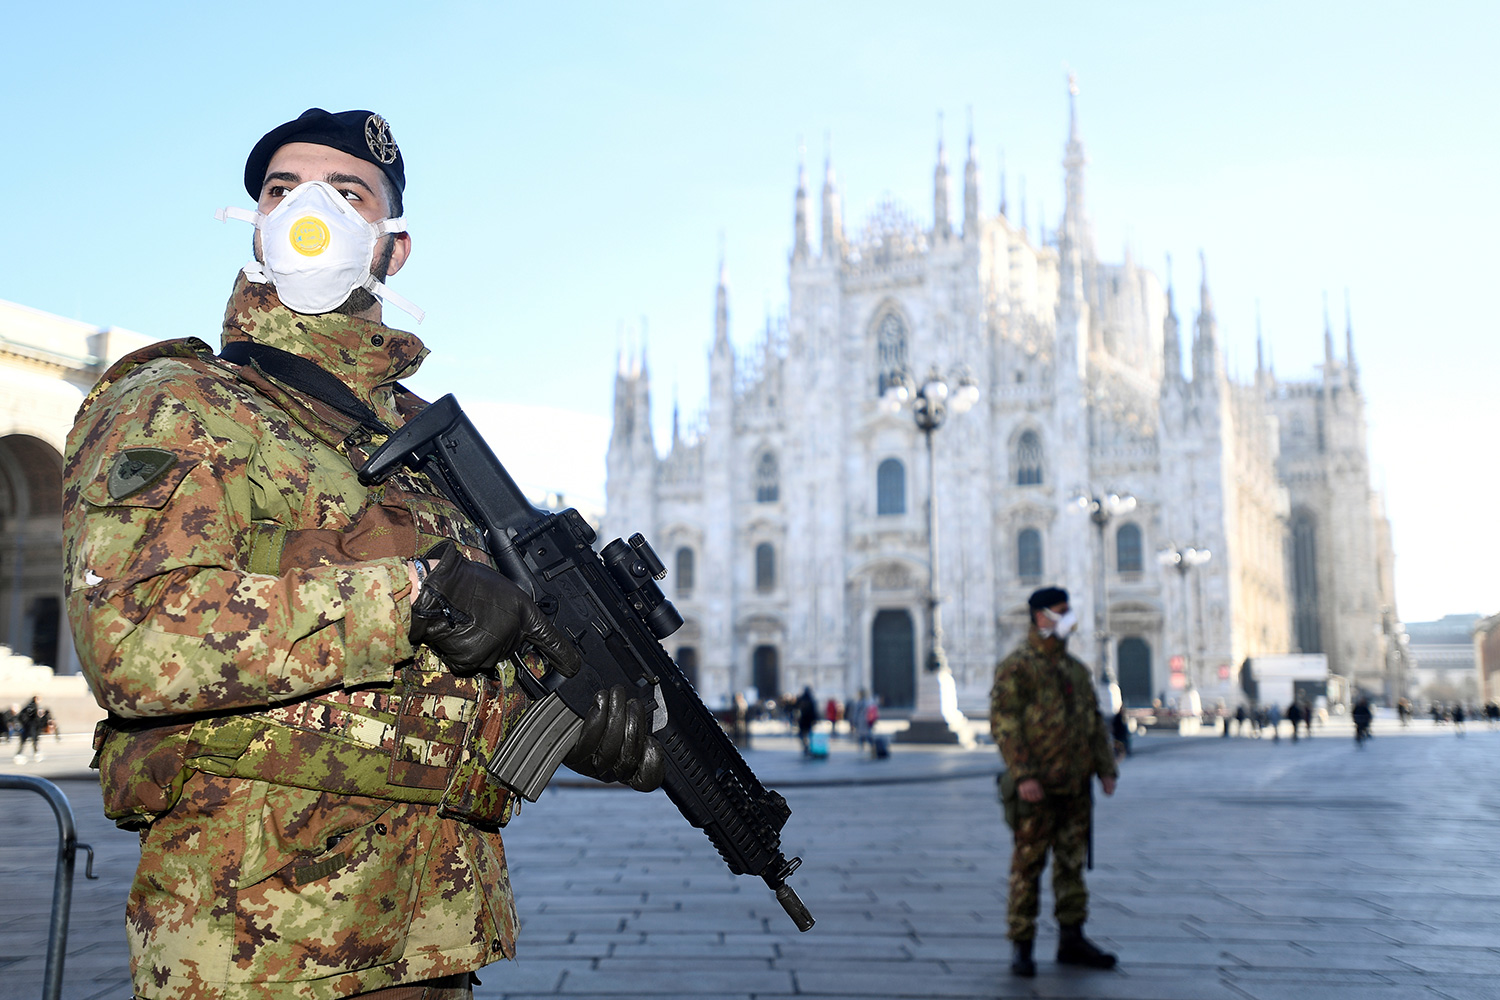 Military officers wearing face masks stand outside Duomo cathedral in Milan, Italy on February 24, 2020. The cathedral was closed by authorities due to the coronavirus outbreak. The photo shows a soldier in full combat gear wearing a mask and holding a military-style assault rifle. In the distance is the iconic architectural tourist destination. REUTERS/Flavio Lo Scalzo